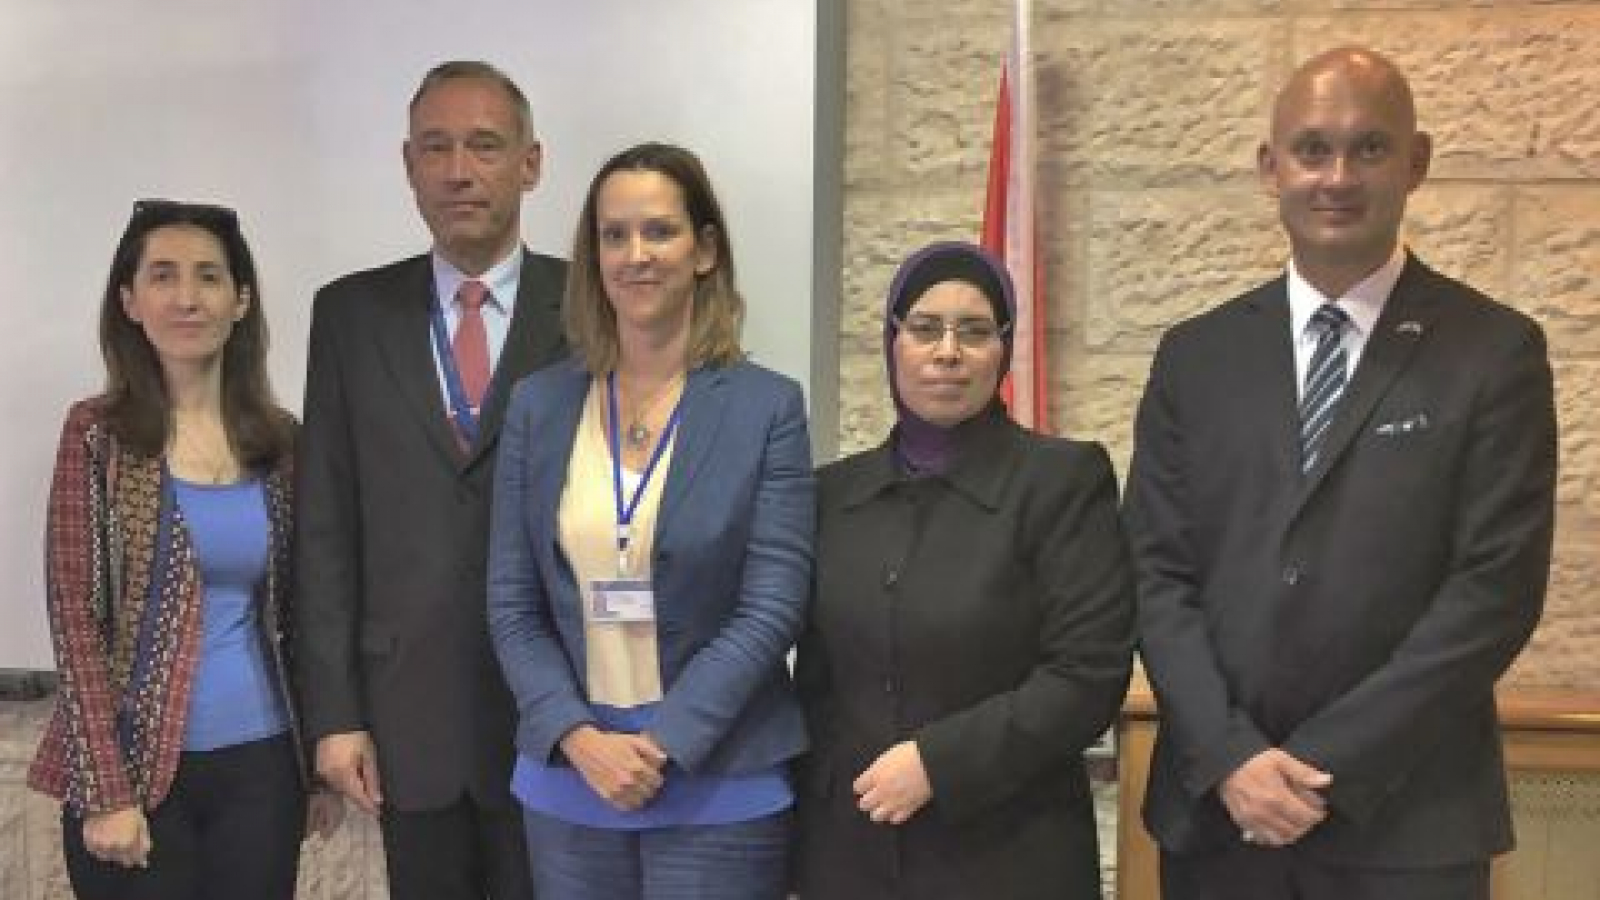 From Left: Director of the Palestinian Judicial Institute, Dr. Rasha Hammad; Head of the EU Coordinating Office for Palestinian Police Support, Kauko Aaltomaa; Deputy Head of Mission and Chief of Staff, Dr. Katja Dominik; Naila Younis, Acting General Director of the General Administration of training at the Palestinian Judicial Institute; and the Deputy Head of the Rule of Law Section, Peter Stafverfeldt.